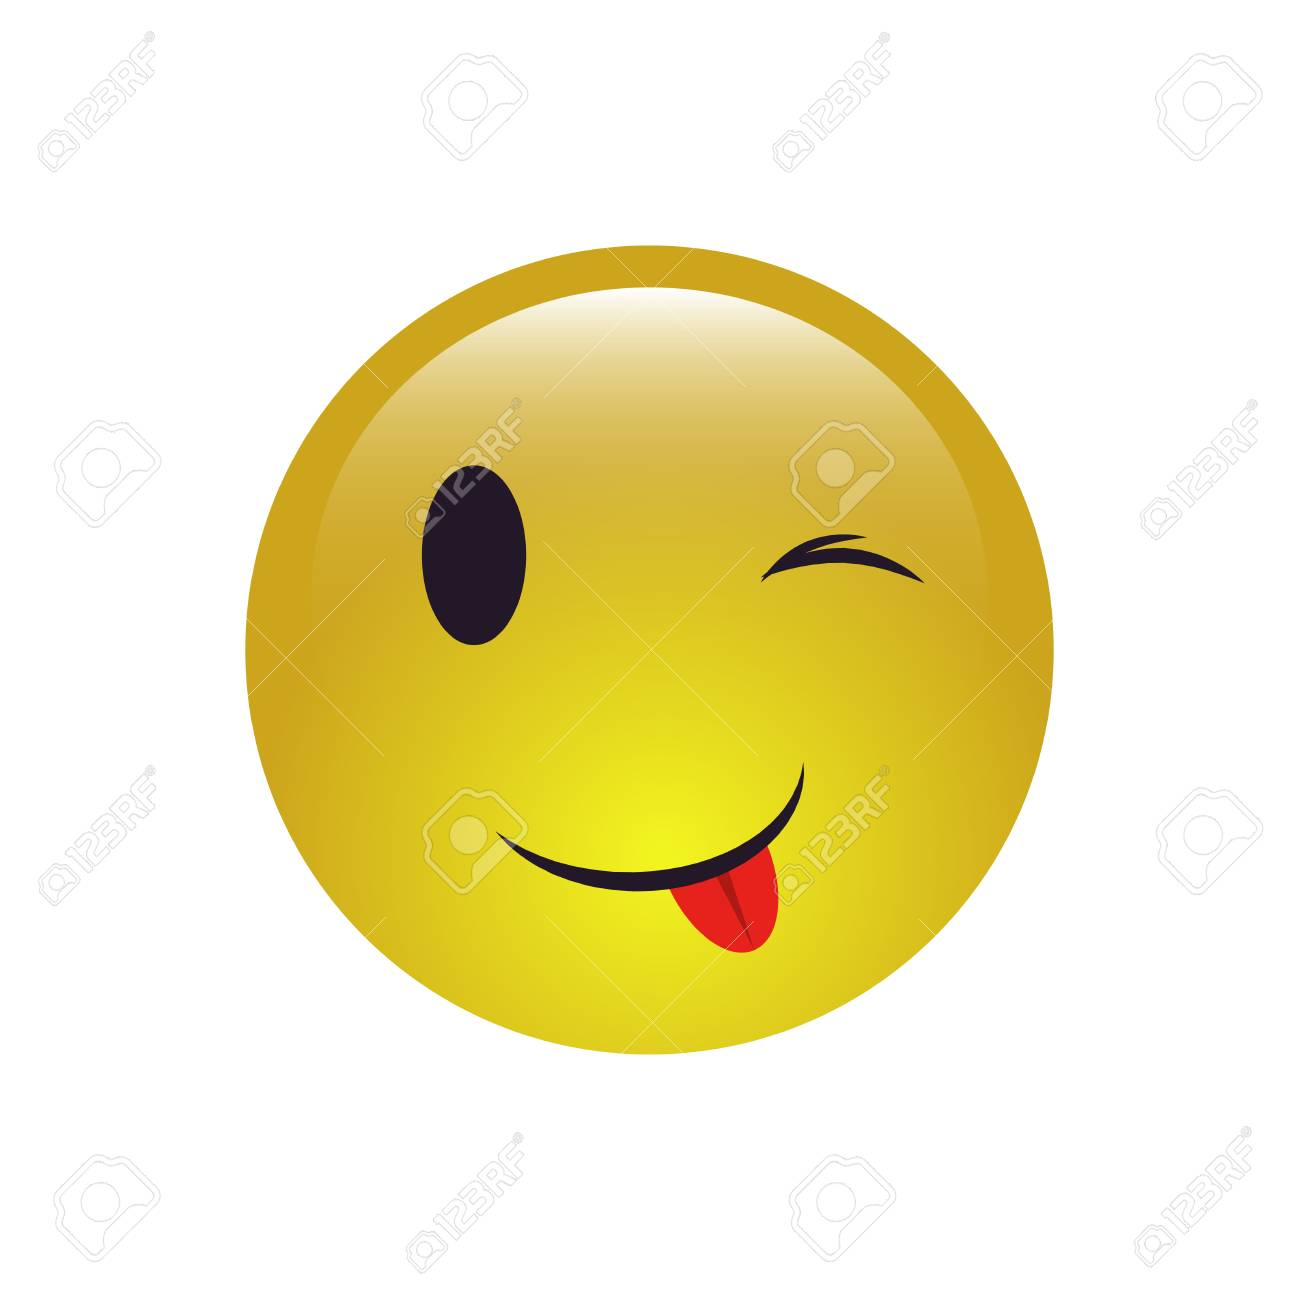 Winking Smiley Face Emoji Icon On The White Background Royalty ...